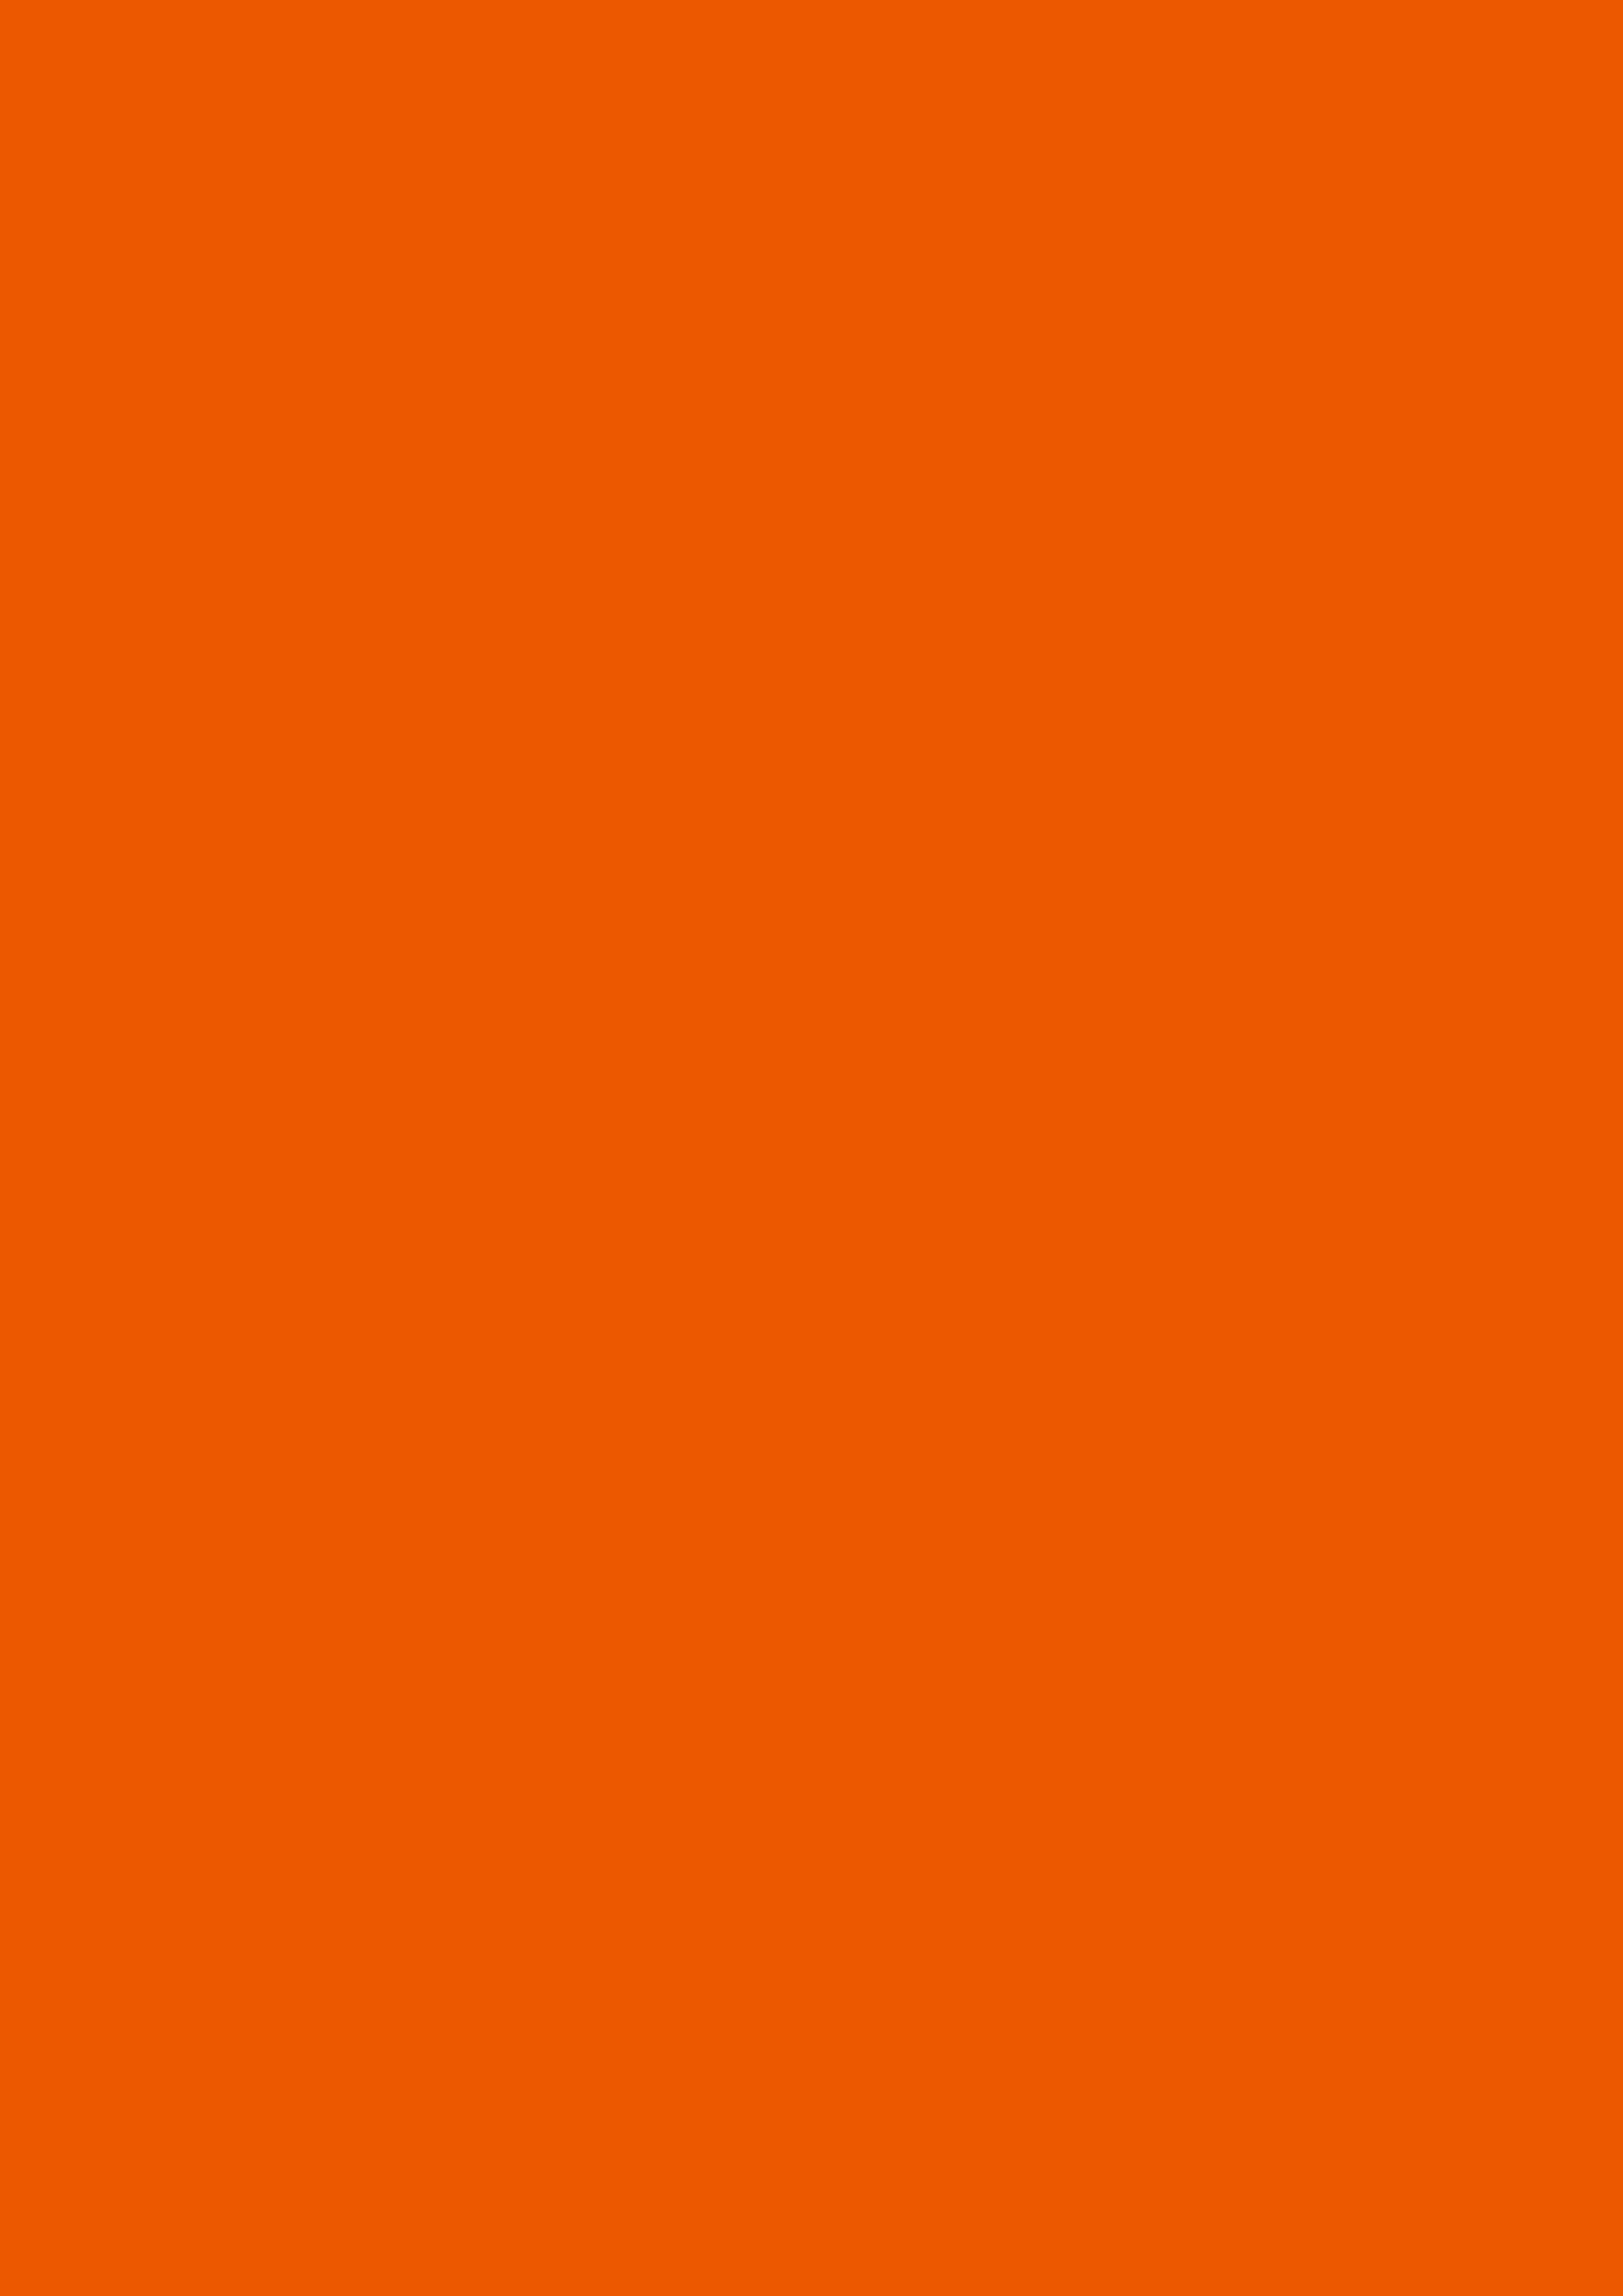 2480x3508 Persimmon Solid Color Background